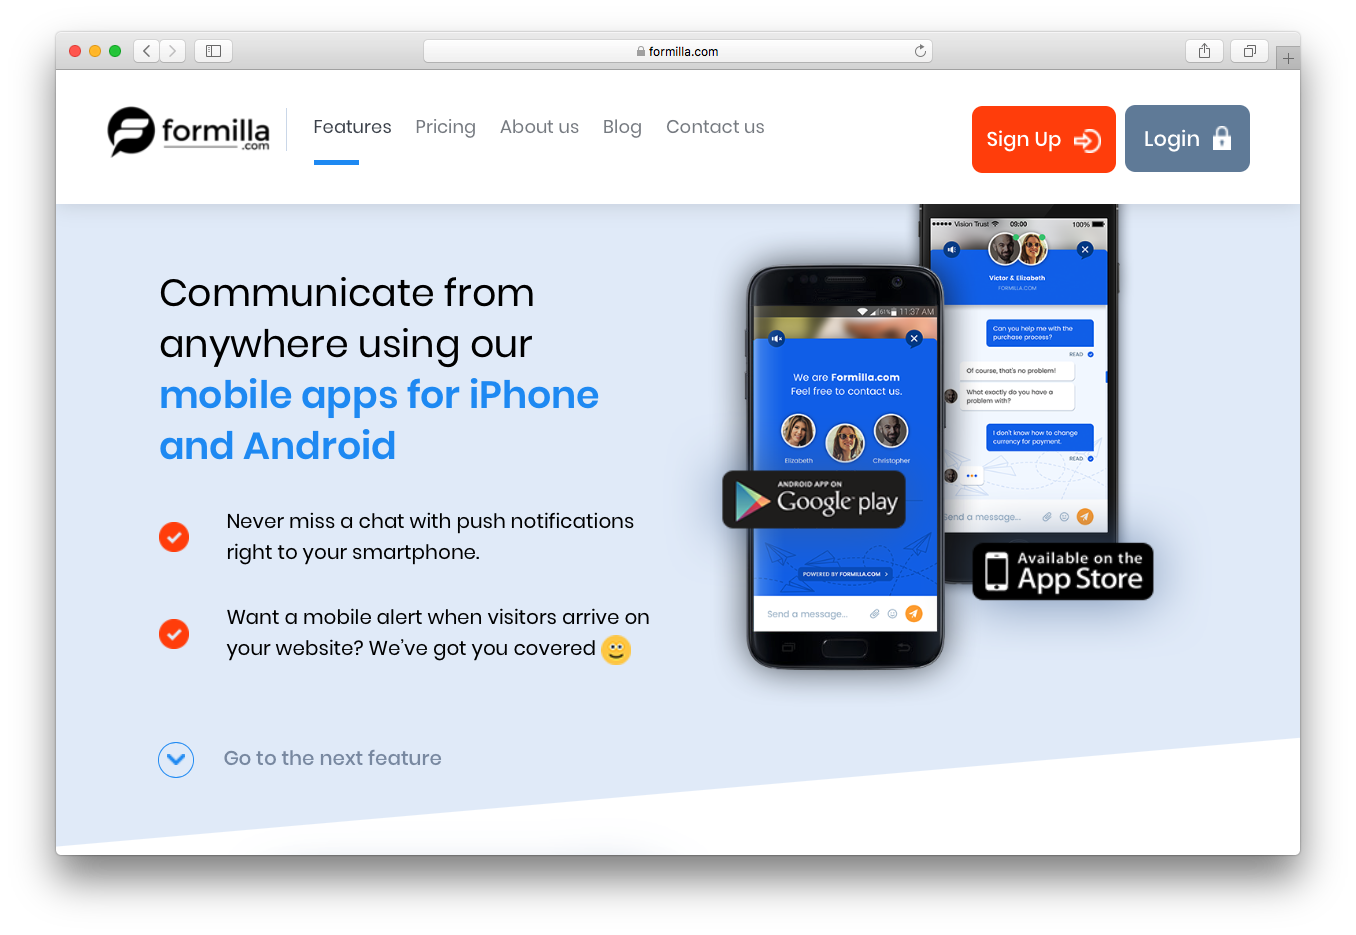 Formilla communicate anywhere mobile apps iPhone android smartphone push notifications alert